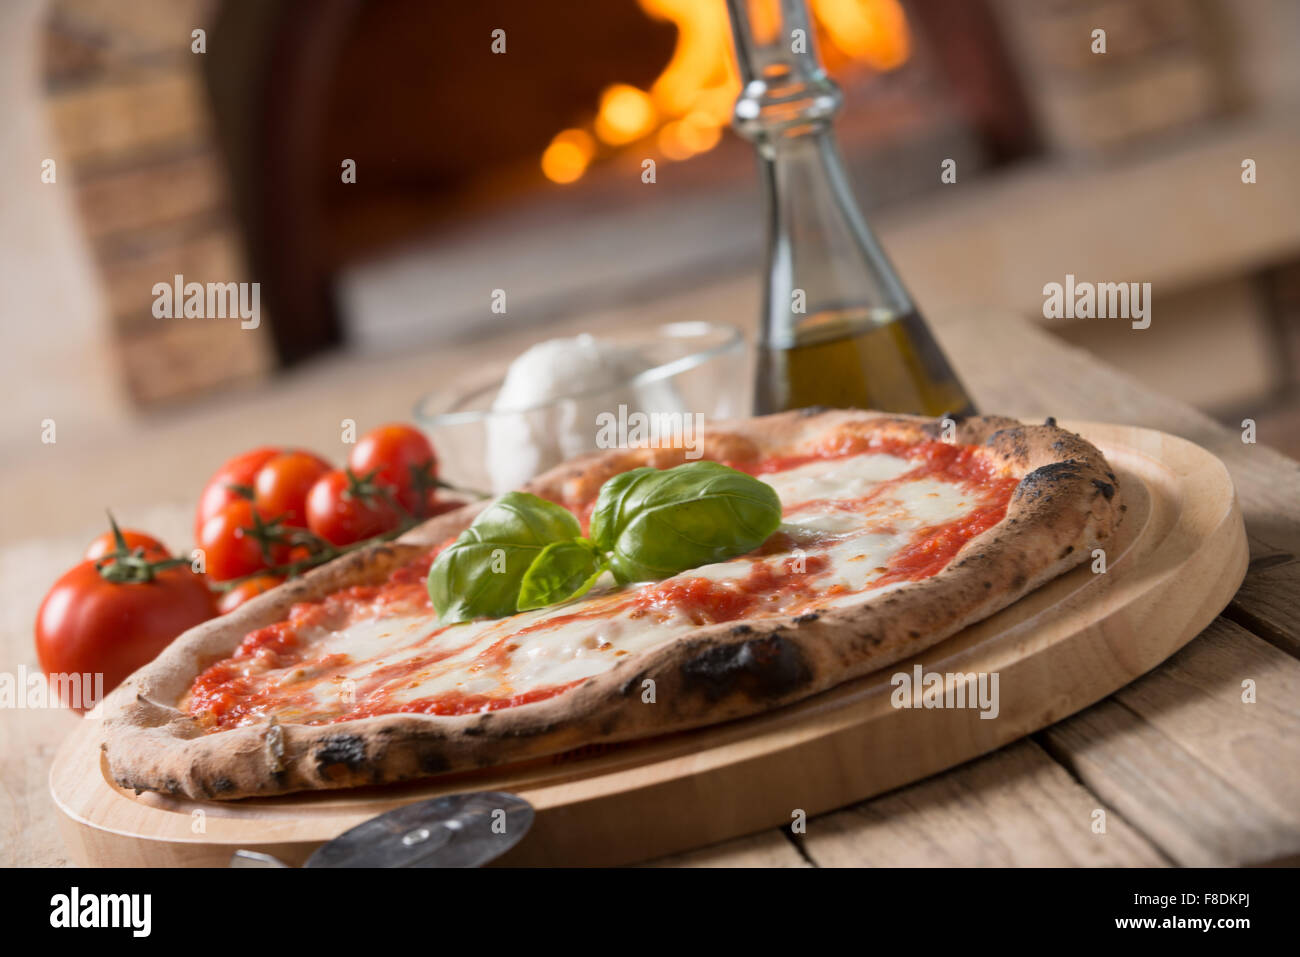 Wood oven baked italian pizza margherita - Stock Image